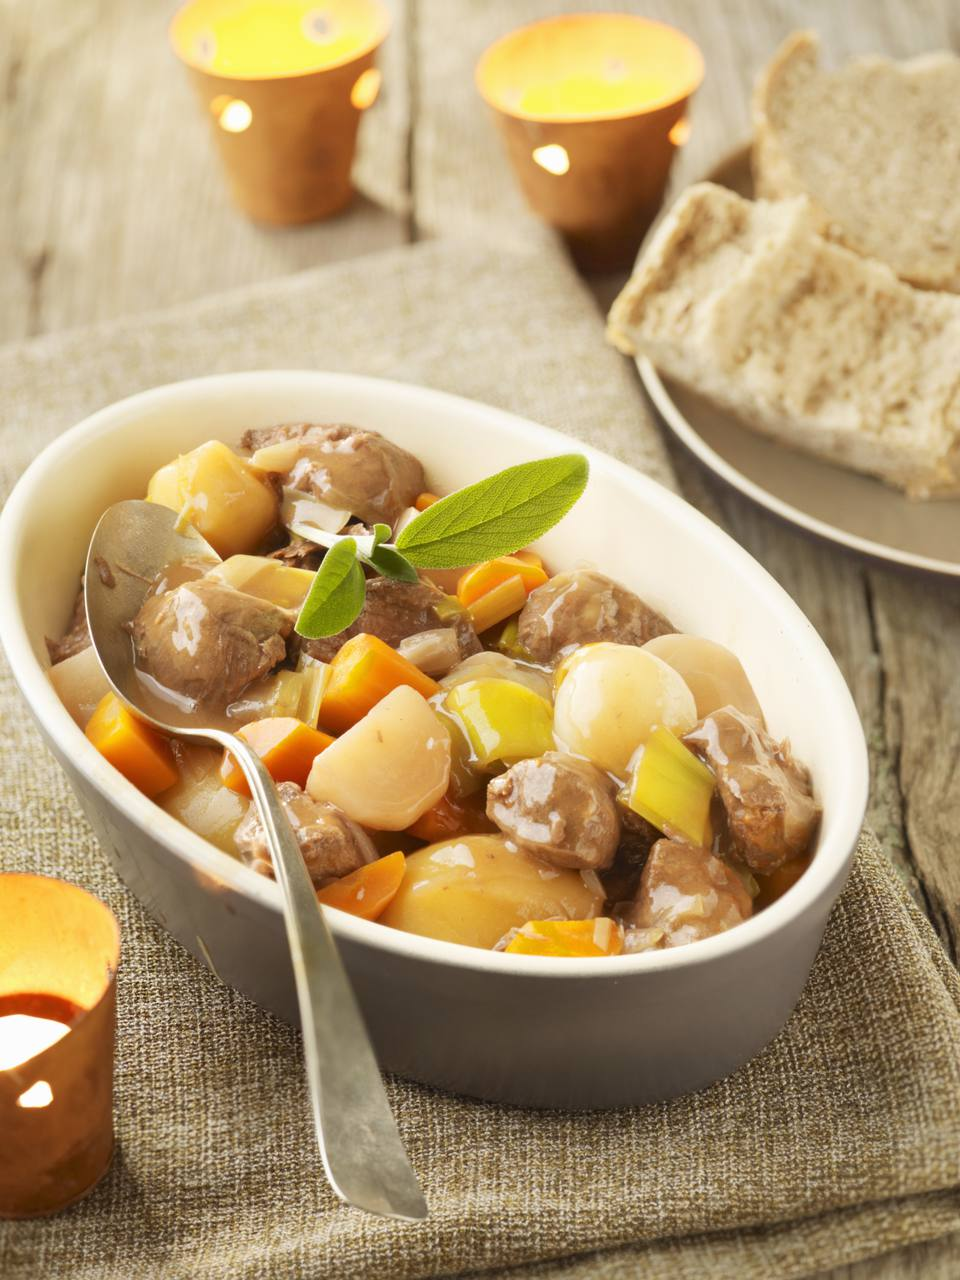 Slow cooker pork stew recipe with apple cider for Slow cooker fish stew